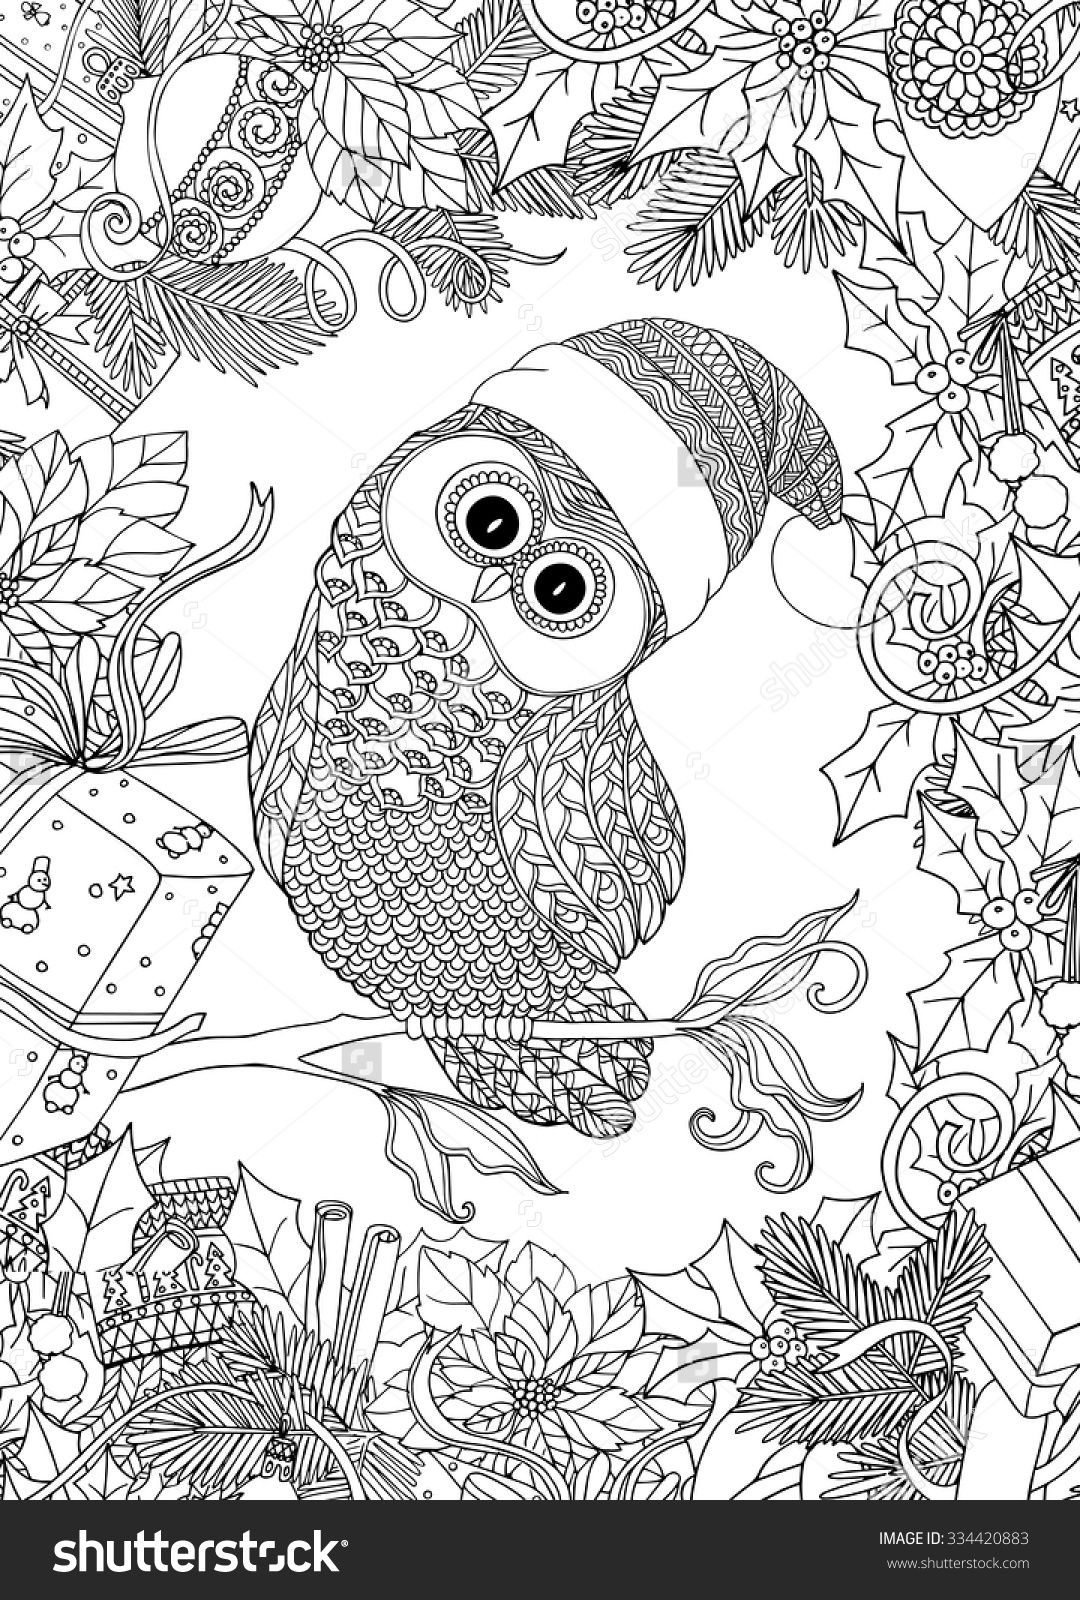 Christmas Coloring Book Pages For Adults With Adult Google Search And Teen